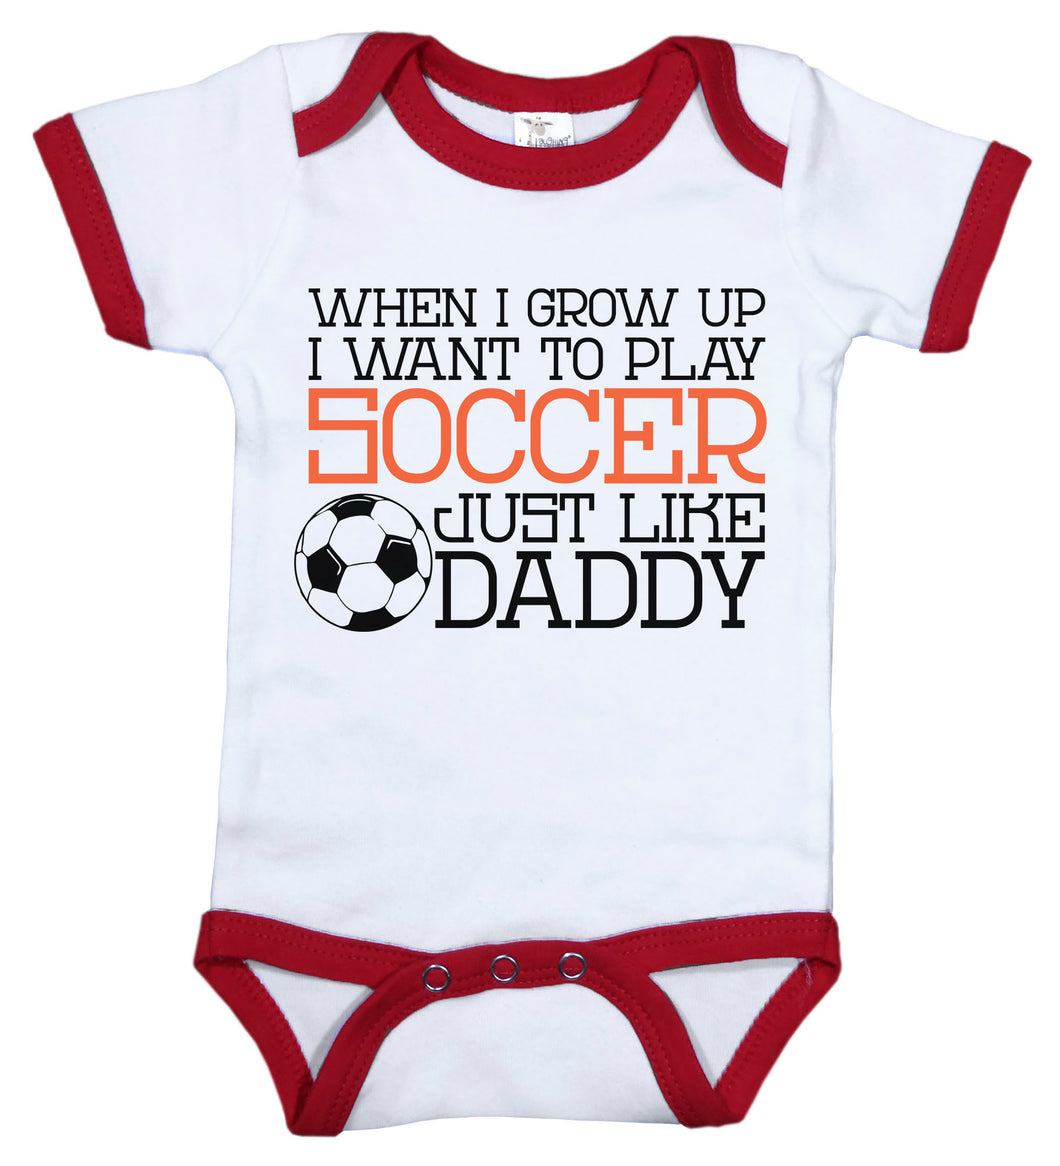 When I Grow Up I Want To Play Soccer Just Like Daddy / Soccer Ringer Onesie